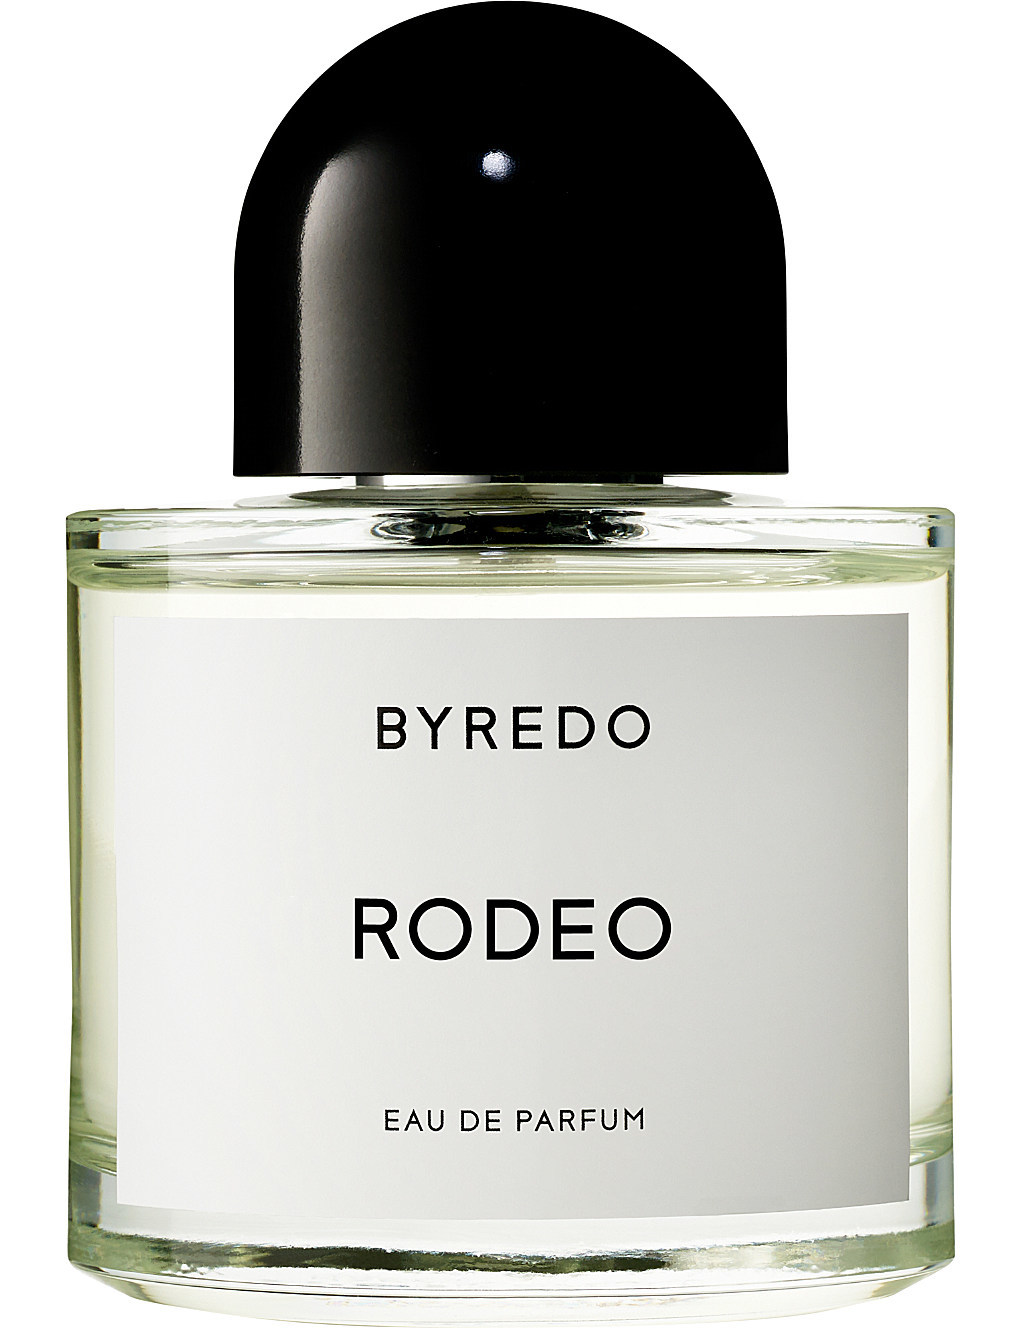 RODEO by BYREDO 5ML Travel Spray EXCLUSIVE NEW Perfume LEATHER AMBER VIOLET